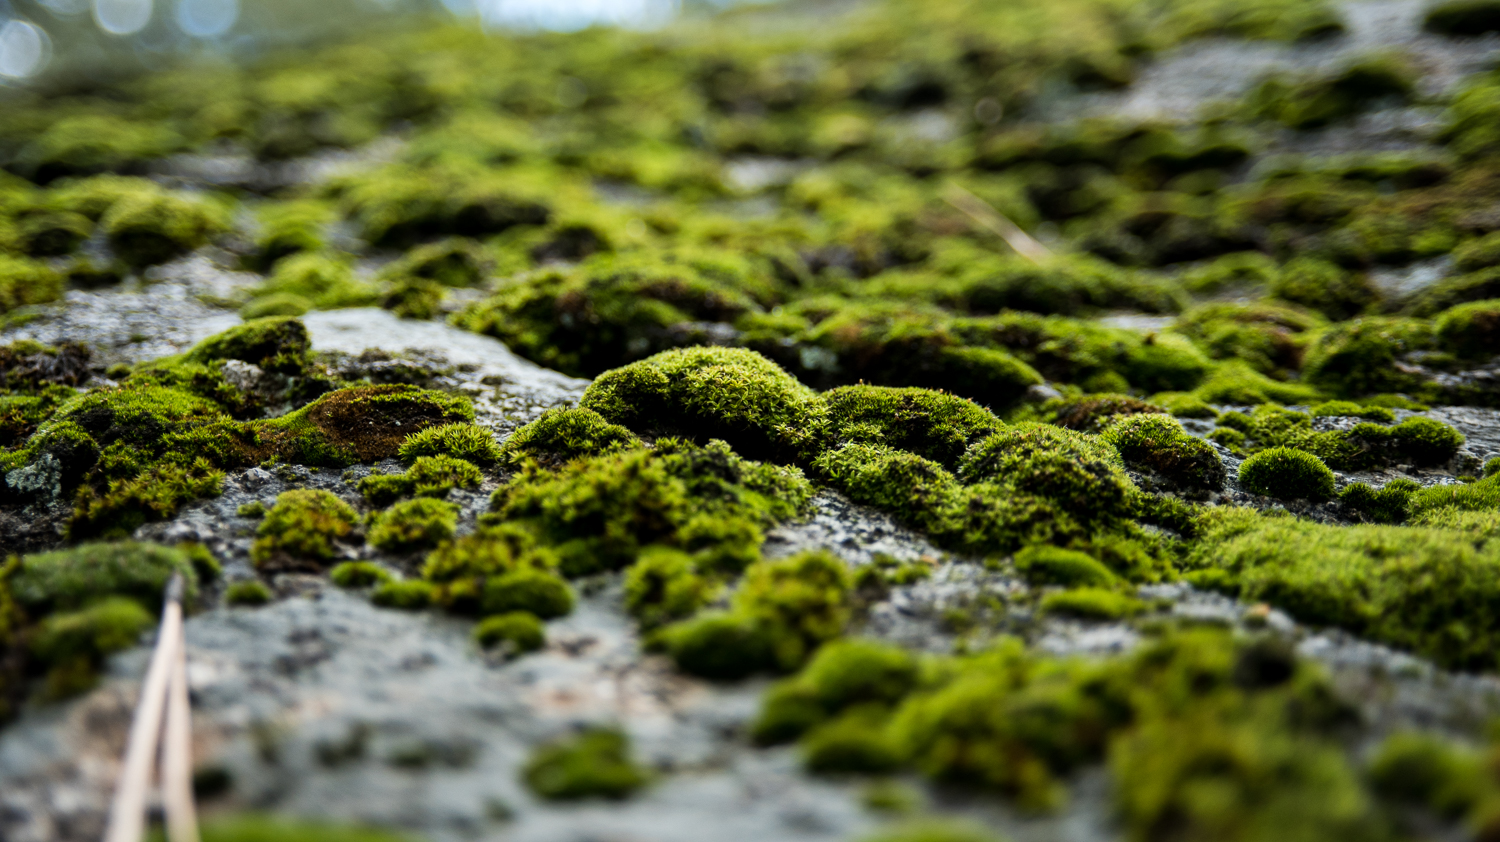 It had rained recently so everything had a damp feel, including some serious moss growth on some of the boulders.